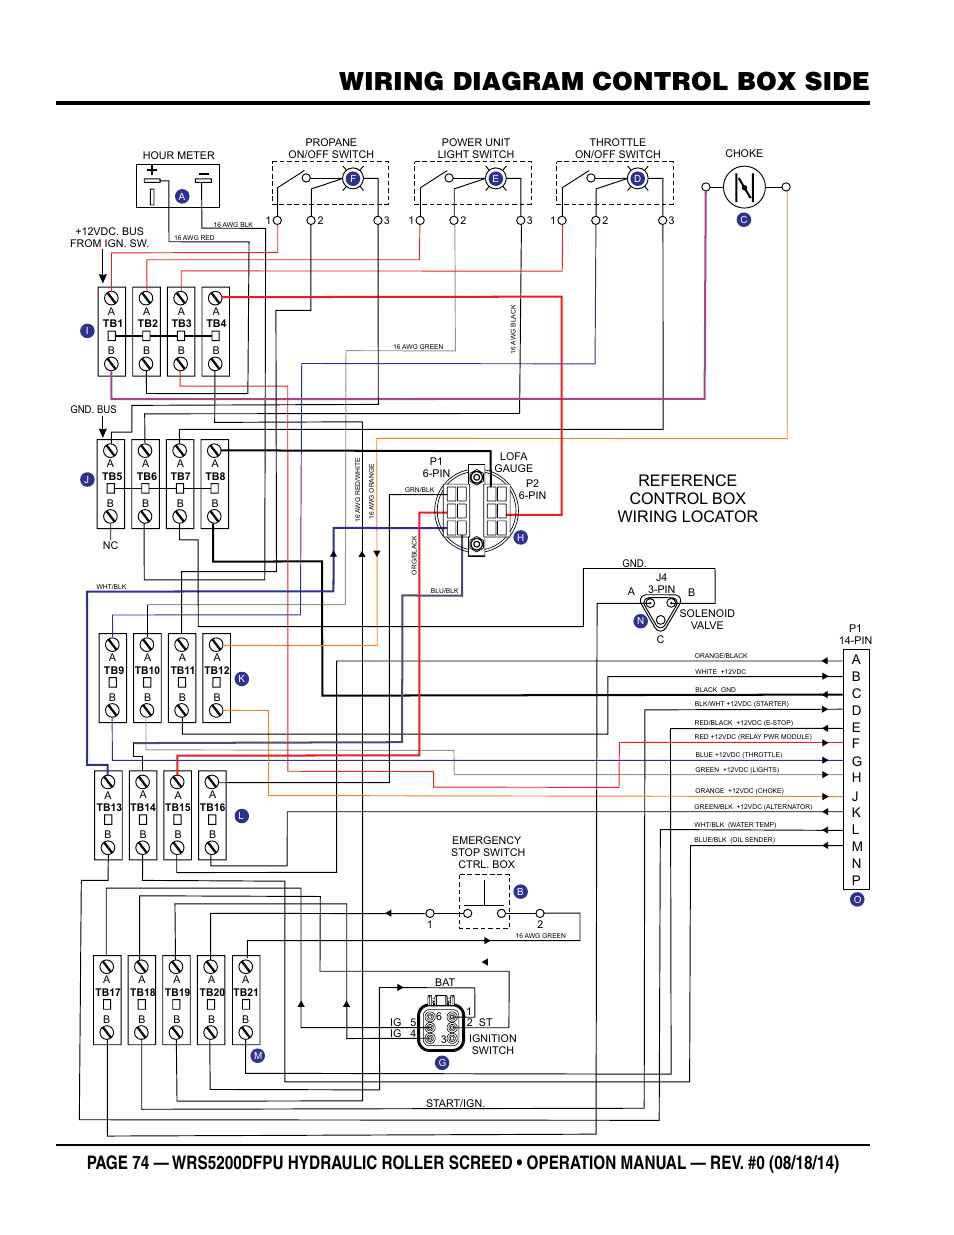 Wiring Diagram Control Box Side  Reference Control Box Wiring Locator